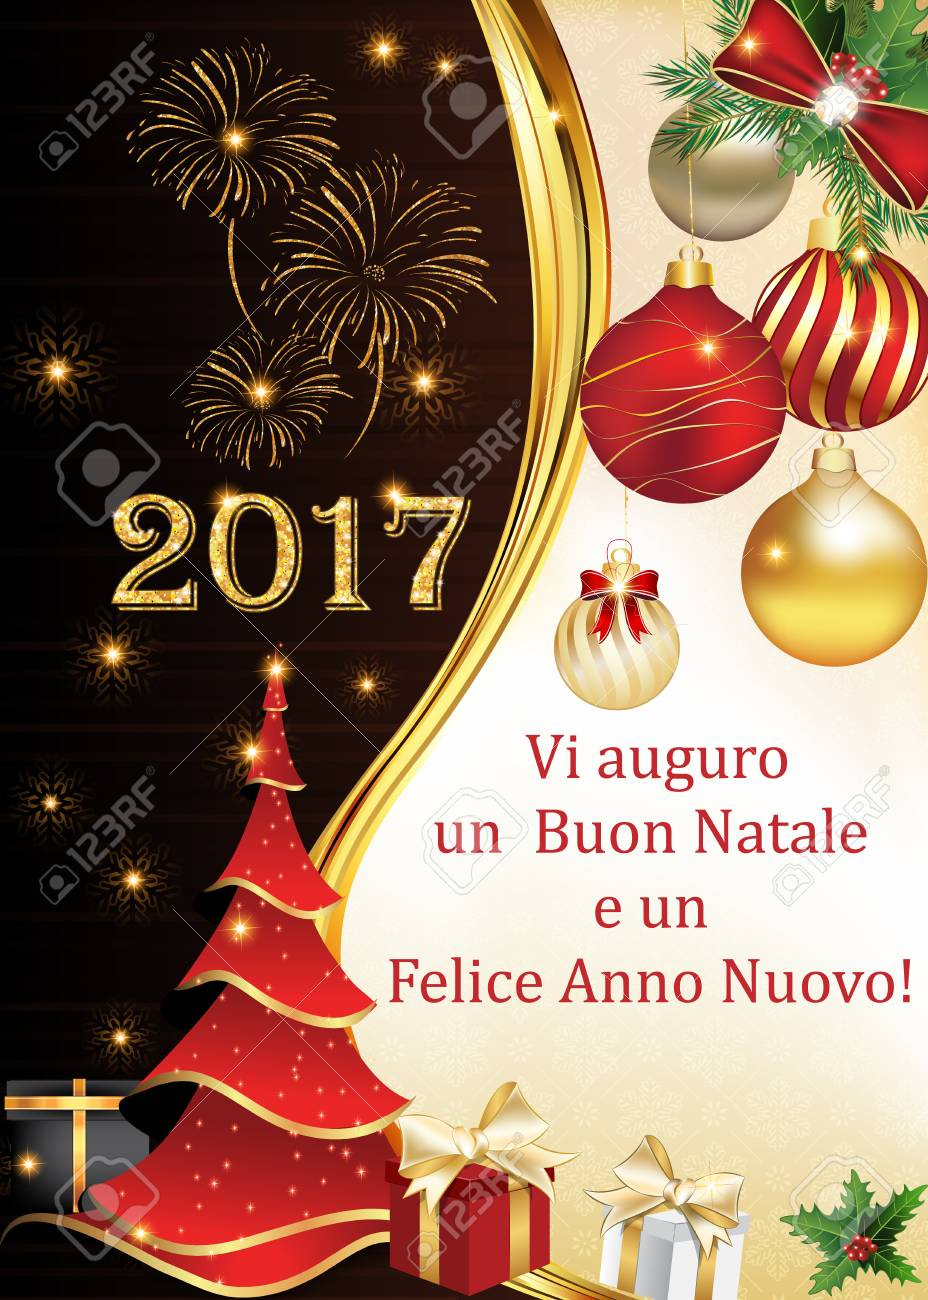 italian new year 2017 corporate greeting card with fireworks christmas tree and christmas baubles